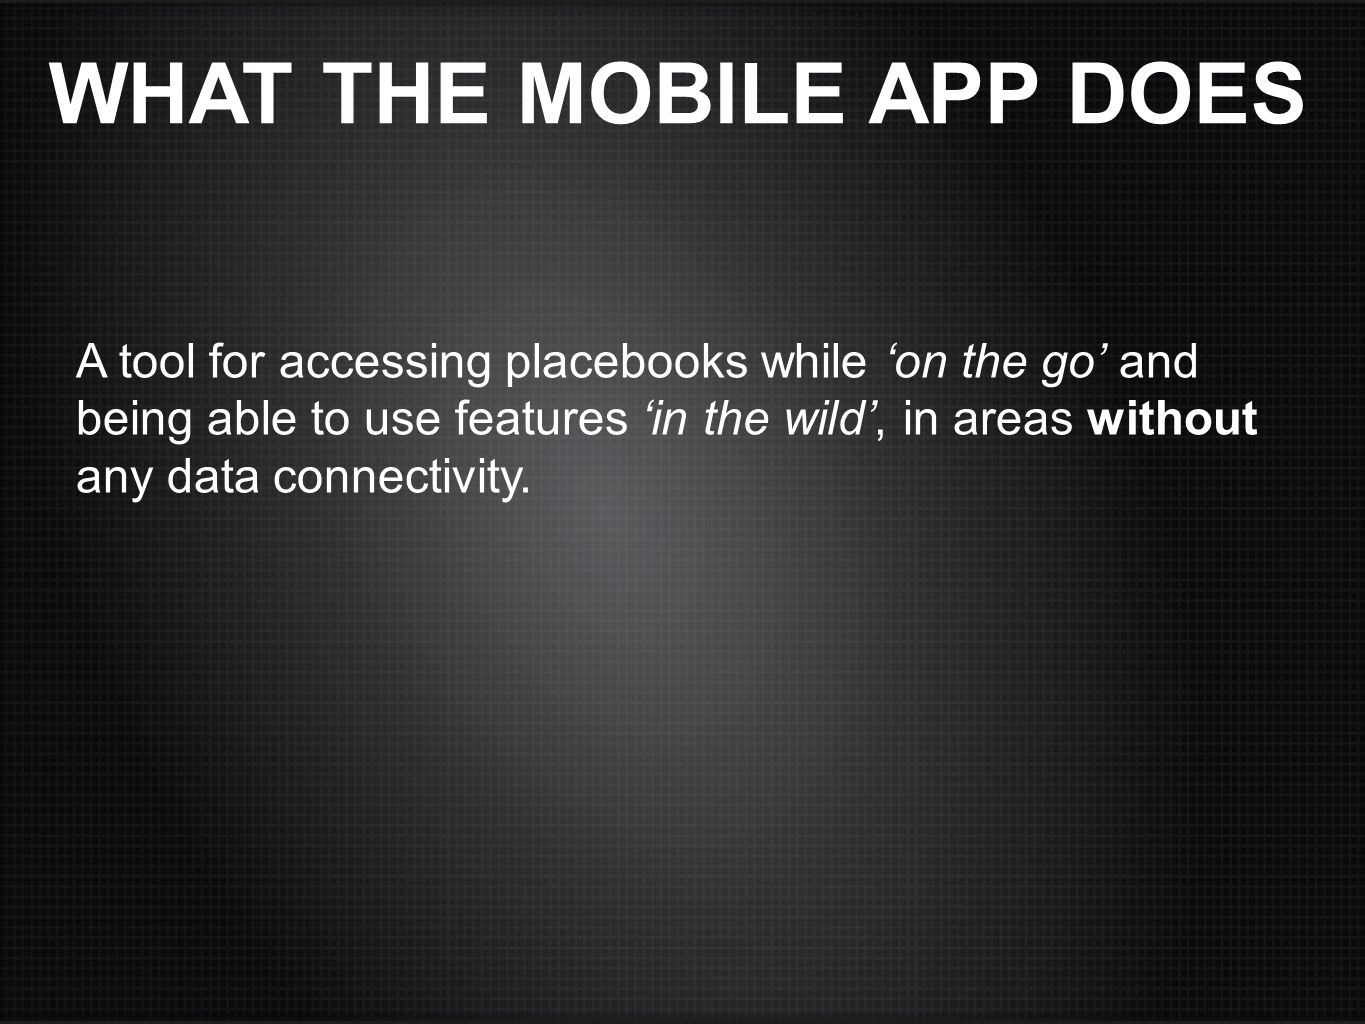 WHAT THE MOBILE APP DOES